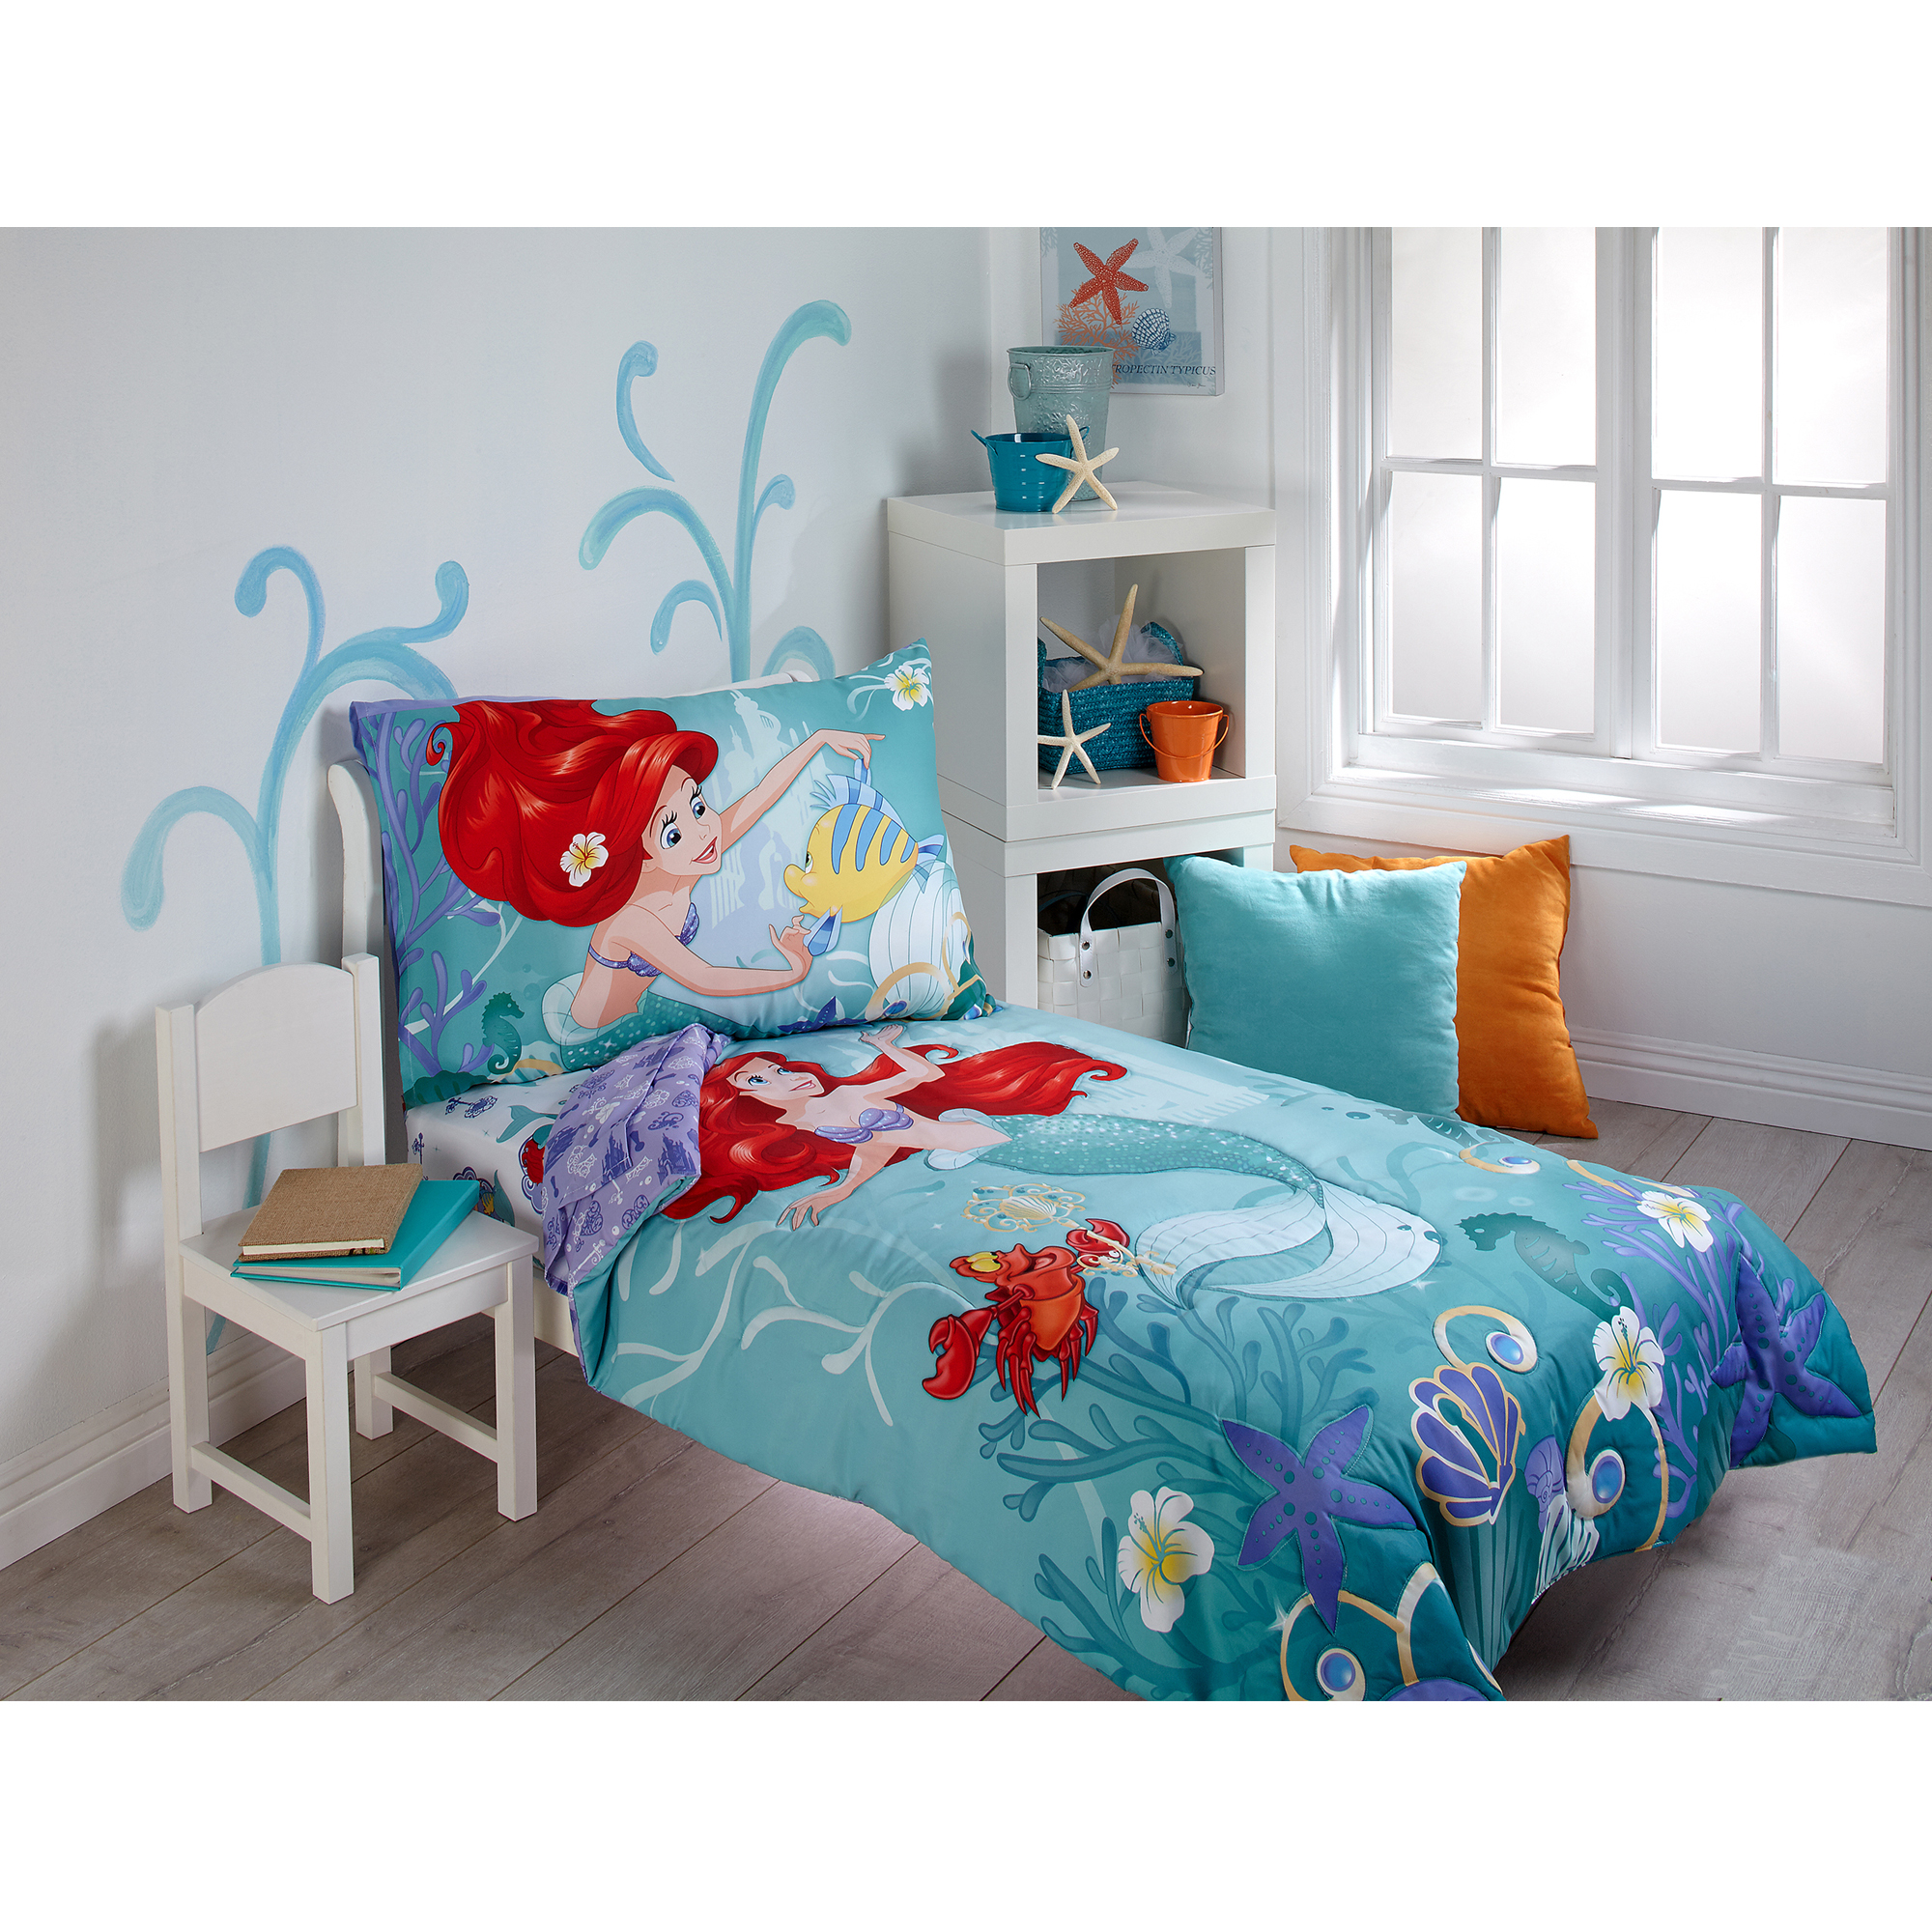 Disney Ariel Key To The Sea 4 Piece Toddler Bedding Set